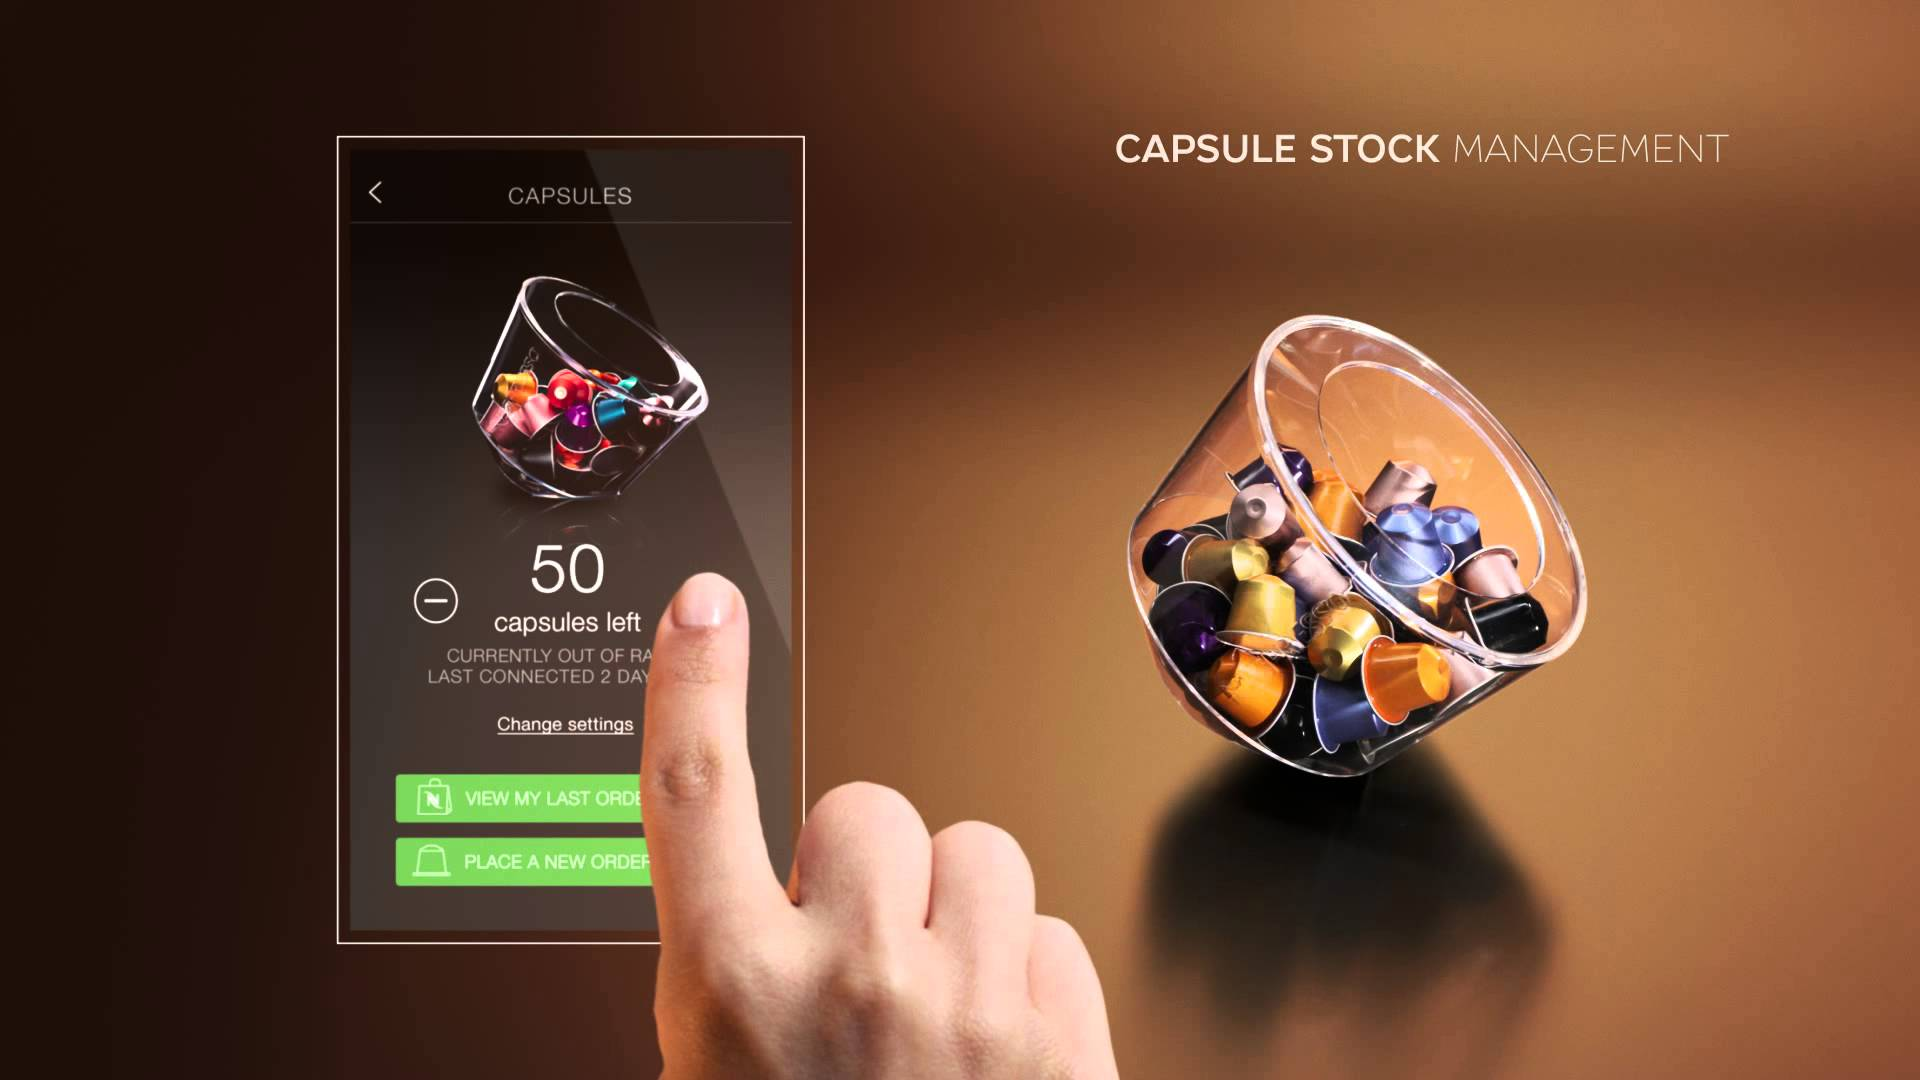 Gestion du stock de capsules via l'application mobile